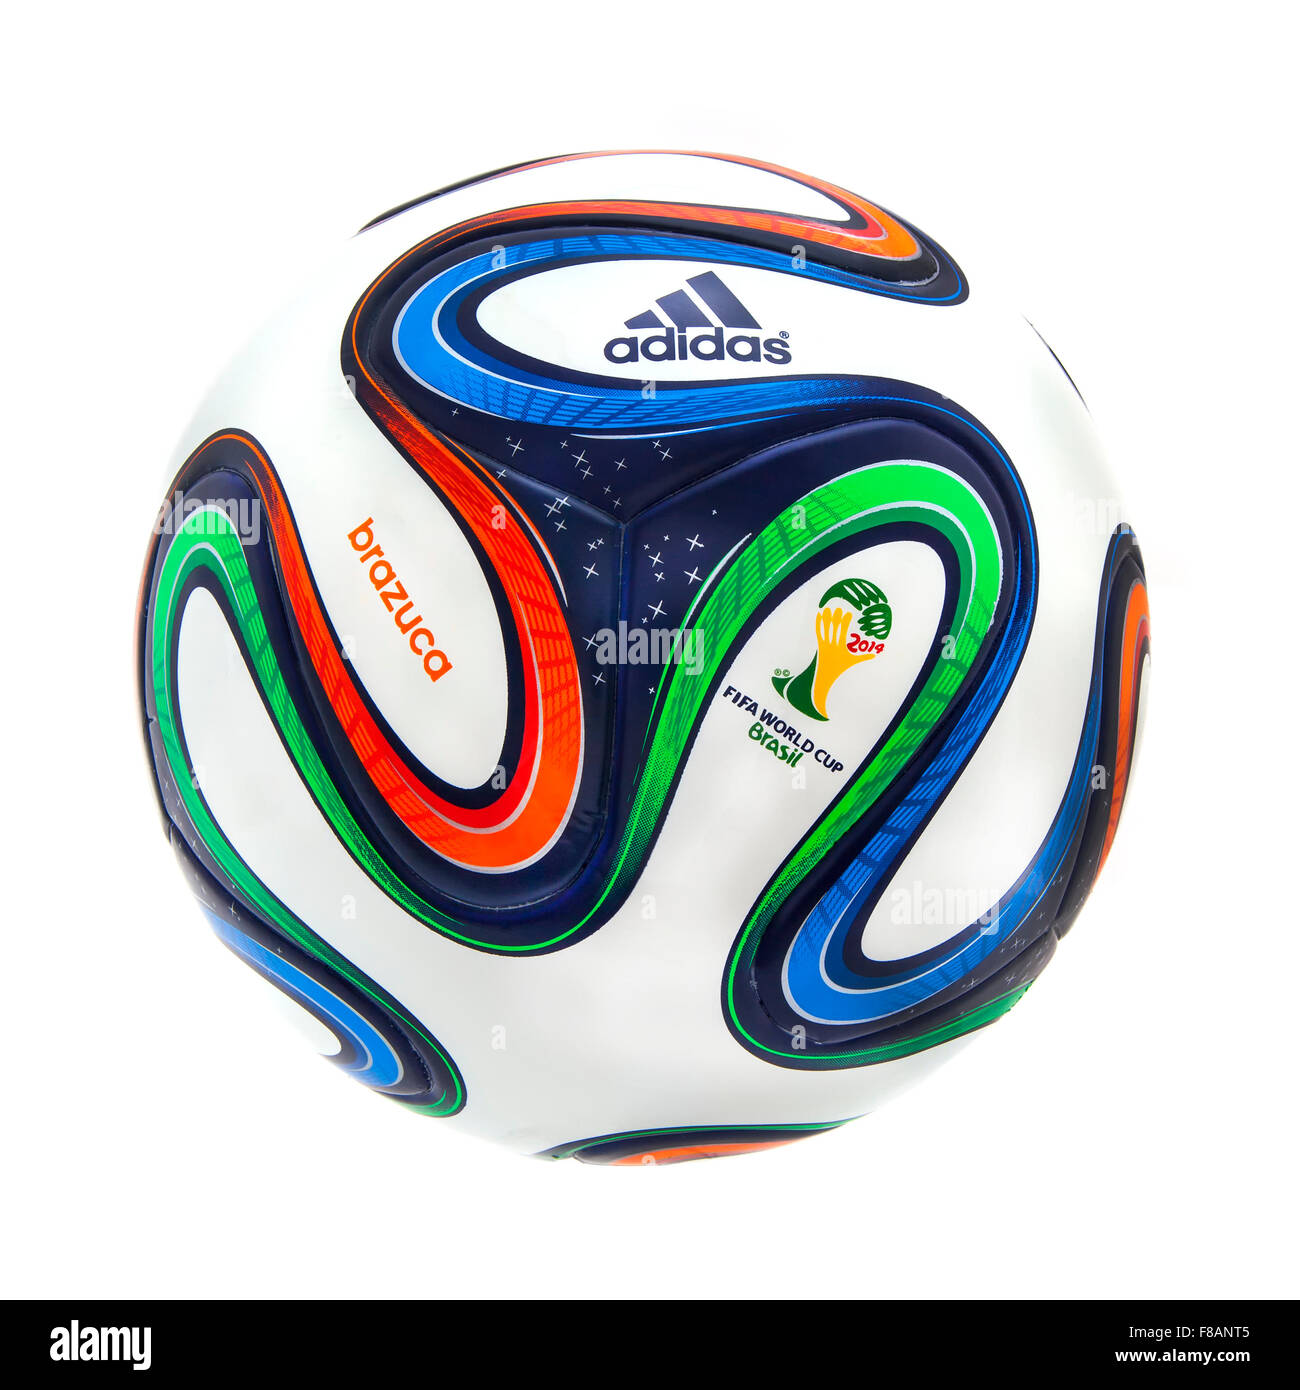 Adidas Brazuca World Cup 2014 Football, The Official Matchball for the 2014 World Cup - Stock Image